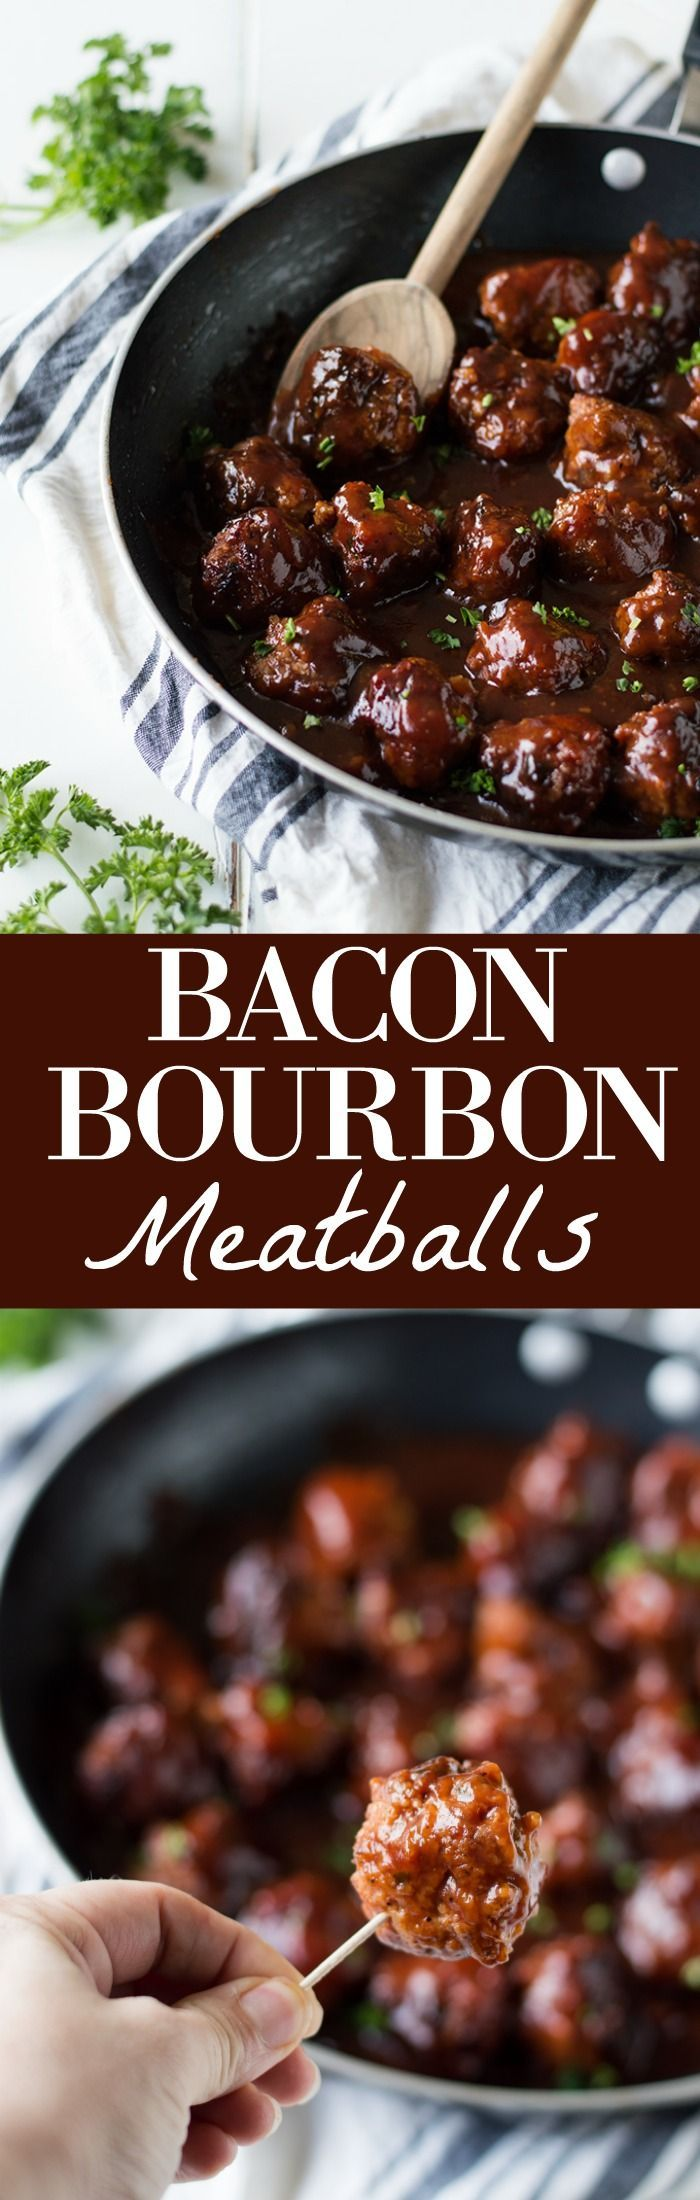 Bacon Bourbon Meatballs! These meatballs are made with bacon and ground beef and simmered in a bourbon bbq sauce. Perfect to serve as an appetizer for the big game or on a sandwich for family dinner!: